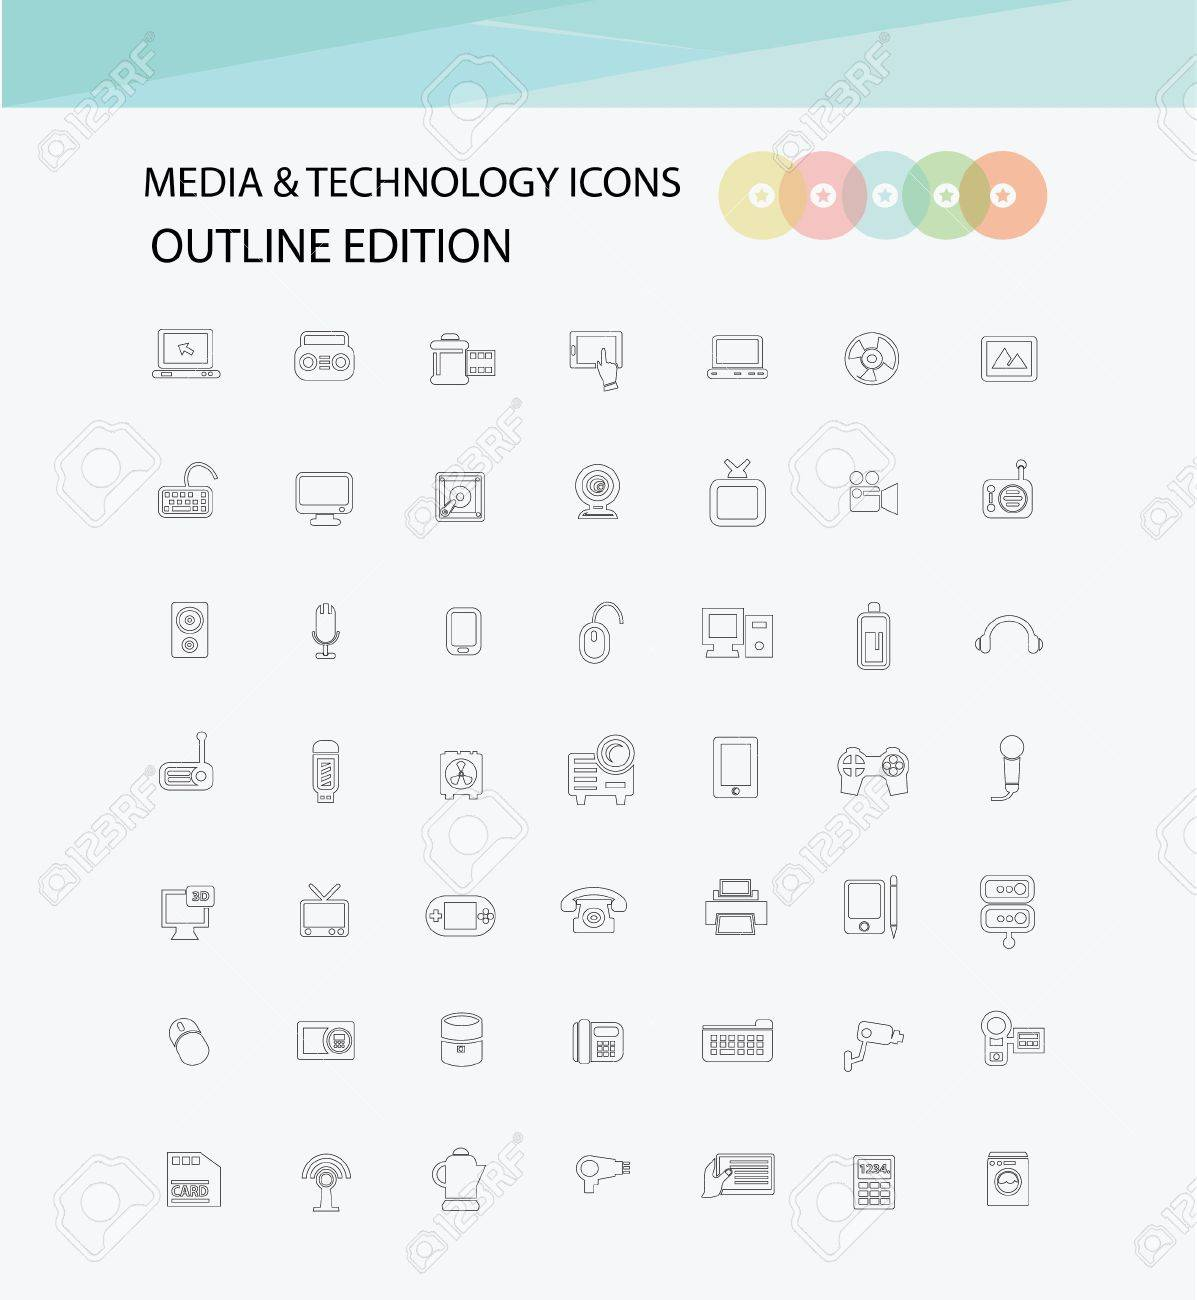 Outline edition,Media   Technology icons,vector Stock Vector - 21283185